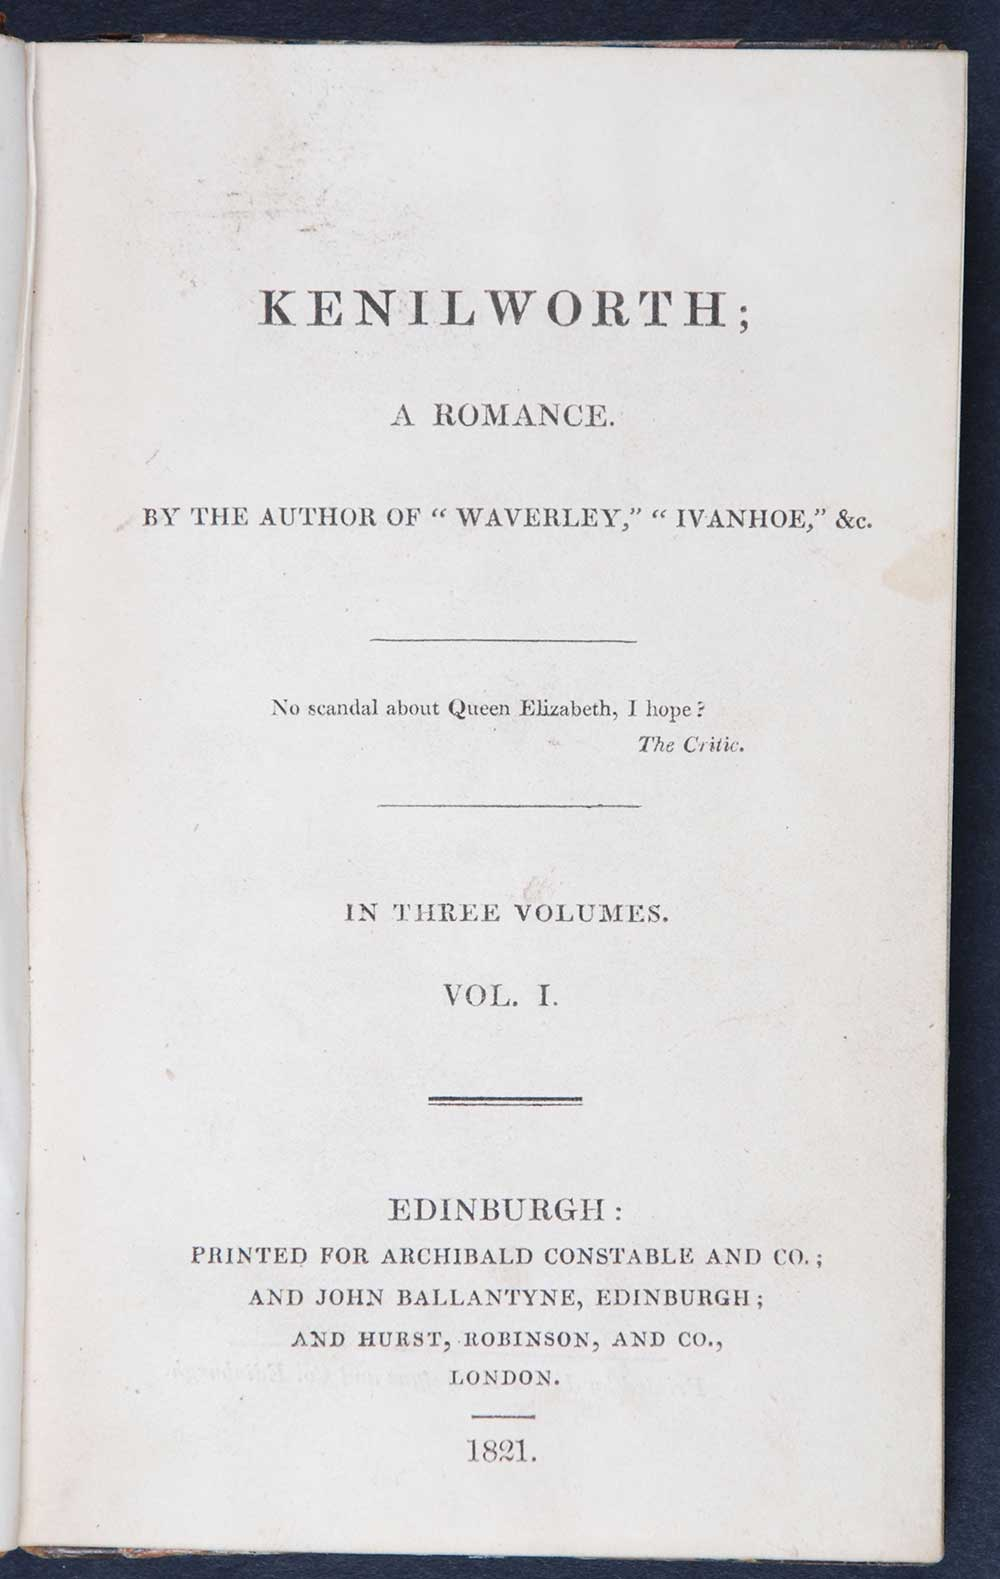 [Sir Walter Scott]. <em>Kenilworth: a romance.</em> [1st edition]. Edinburgh: Printed for Archibald Constable and Co.; and John Ballantyne, Edinburgh; and Hurst, Robinson, and Co., London, 1821. Three volumes; Vol. 1 displayed.